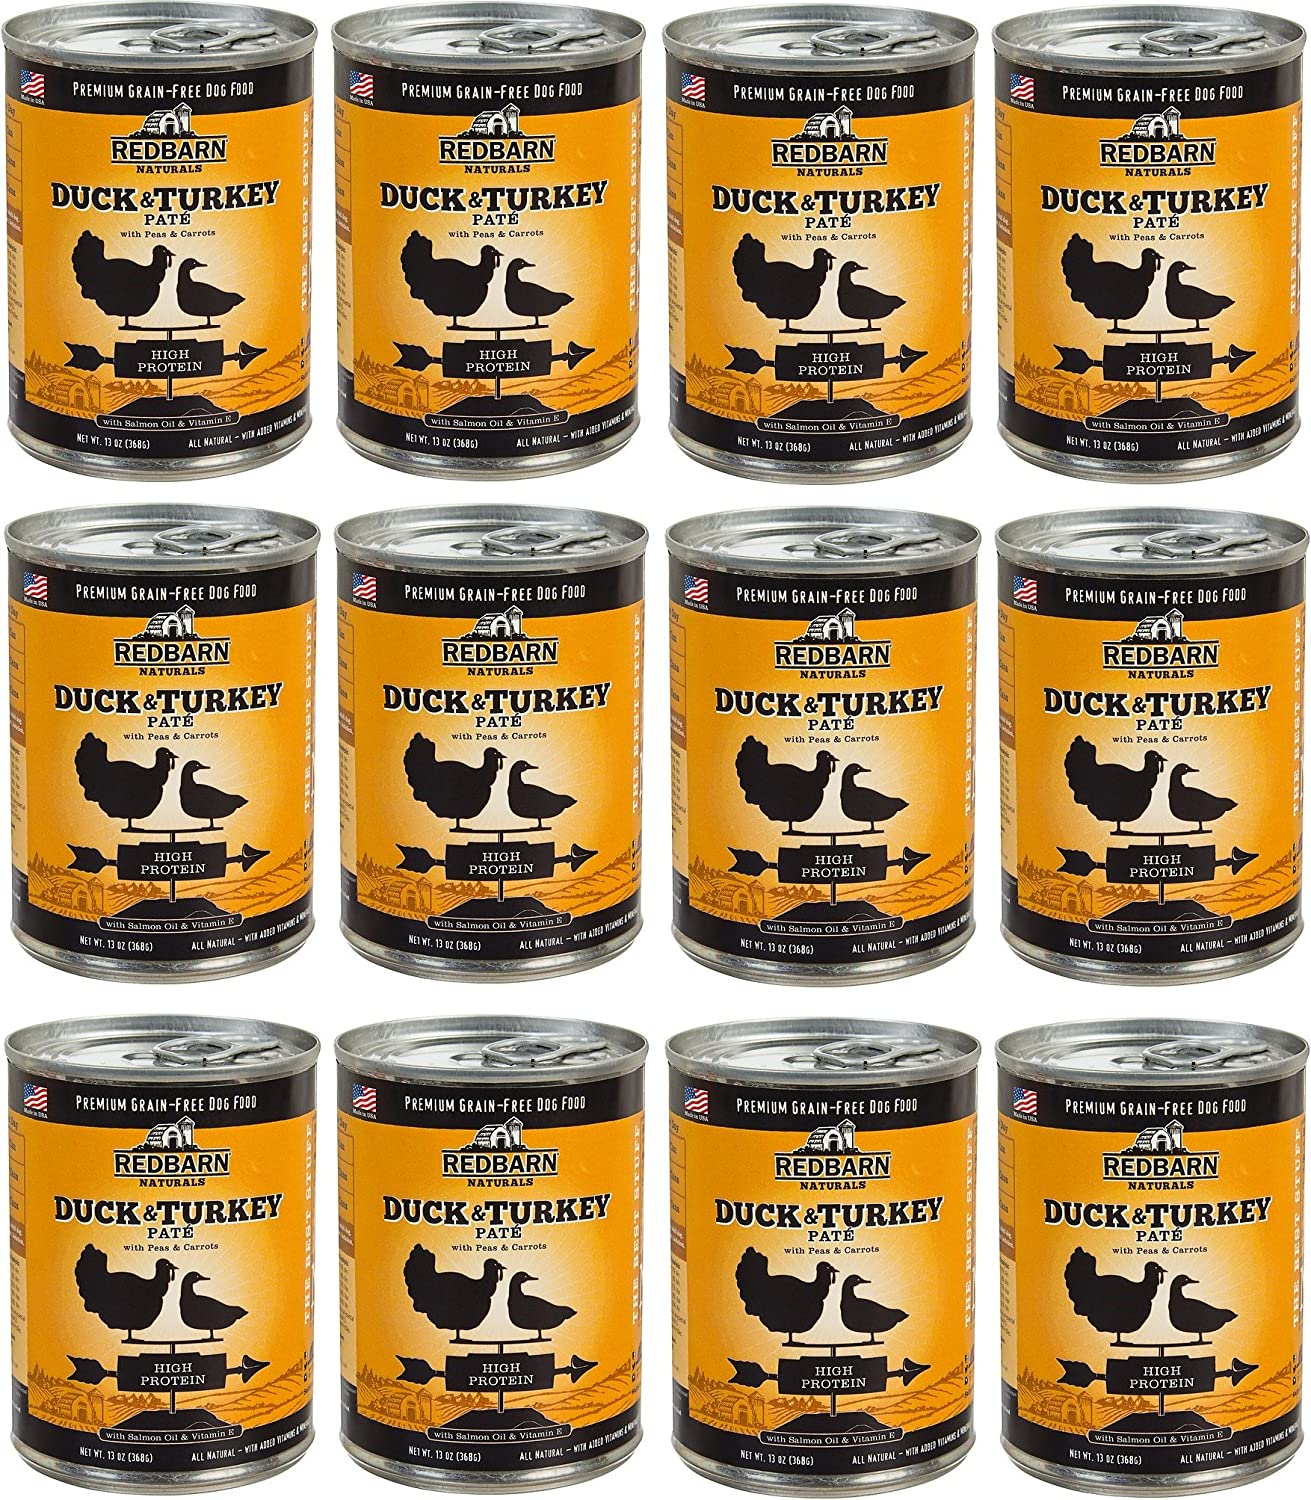 Redbarn Naturals Duck & Turkey Pate High Predein GrainFree Canned Dog Food, 13oz, case of 12